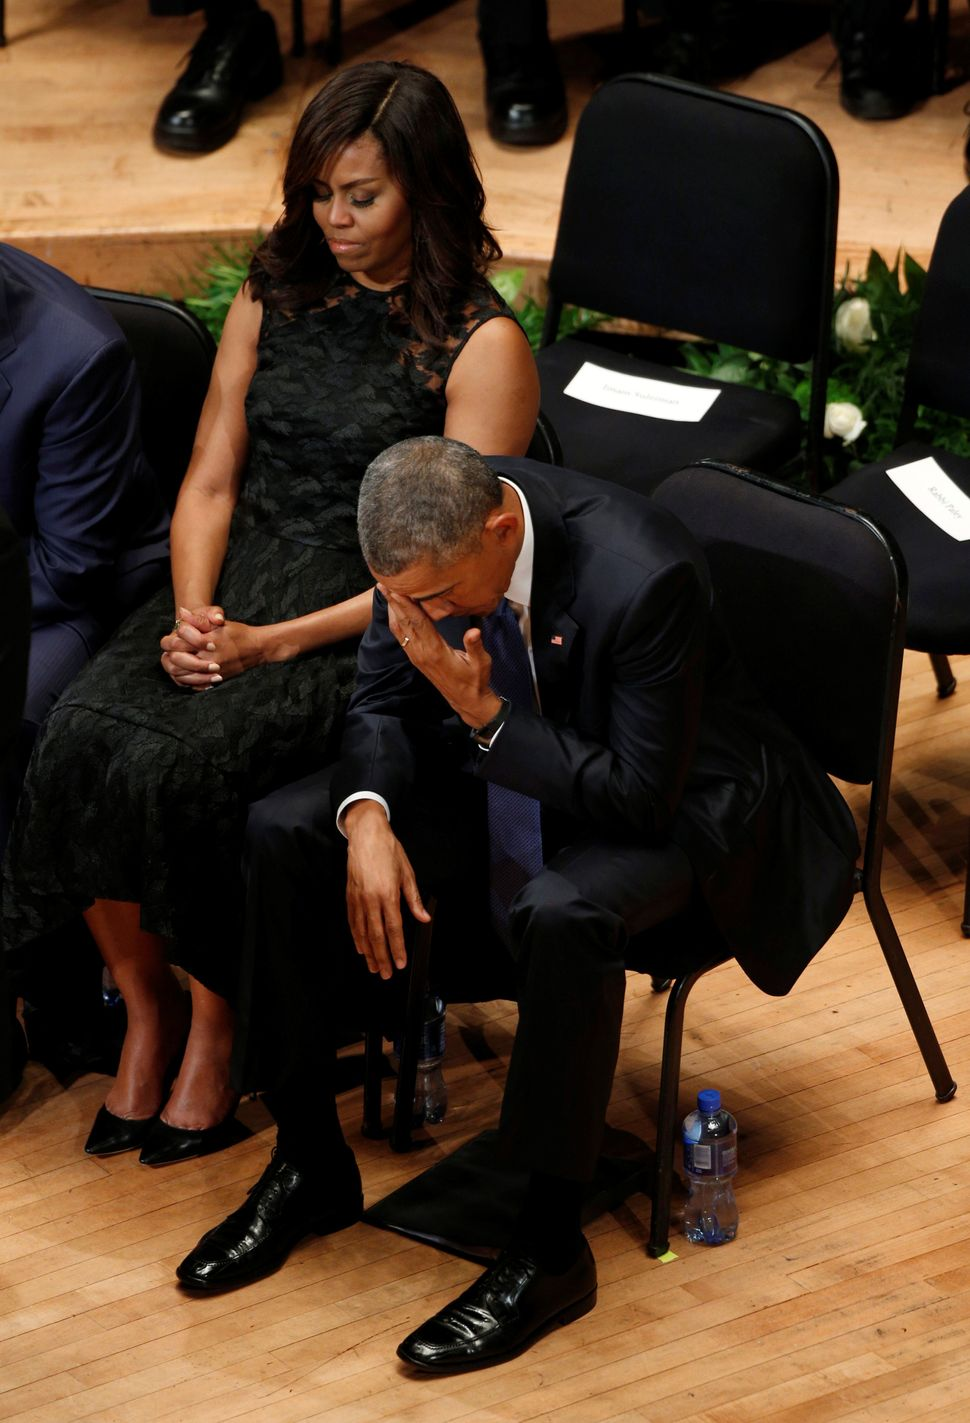 Obama puts his hand to his eyes during the service.